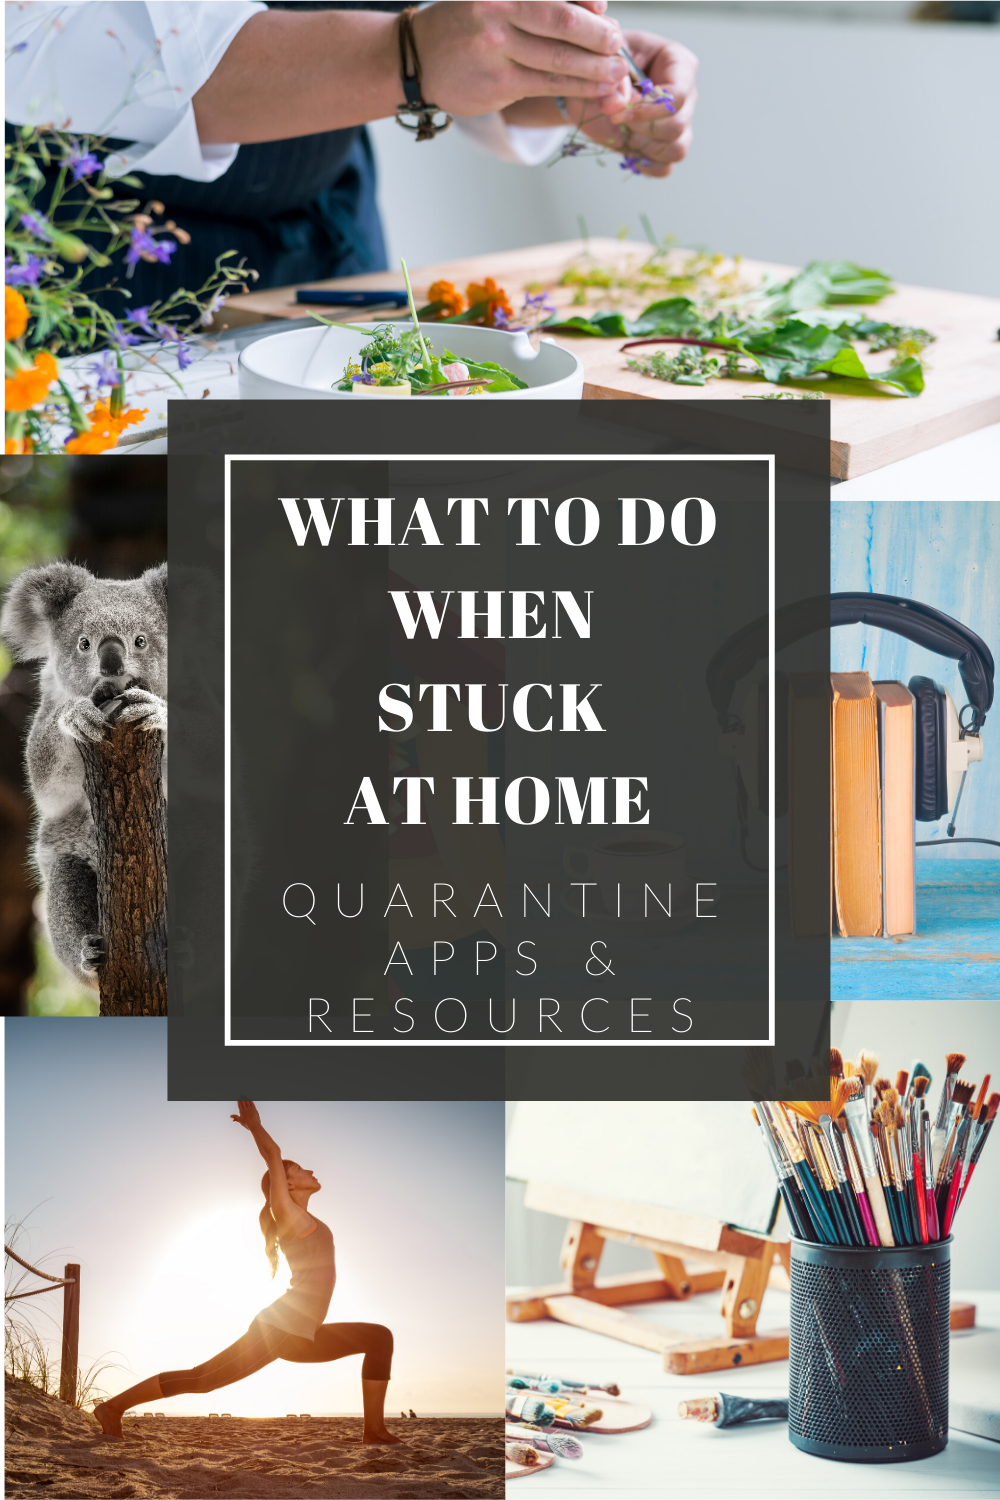 WHAT-TO-DO-WHEN-STUCK-AT-HOME-QUARANTINE